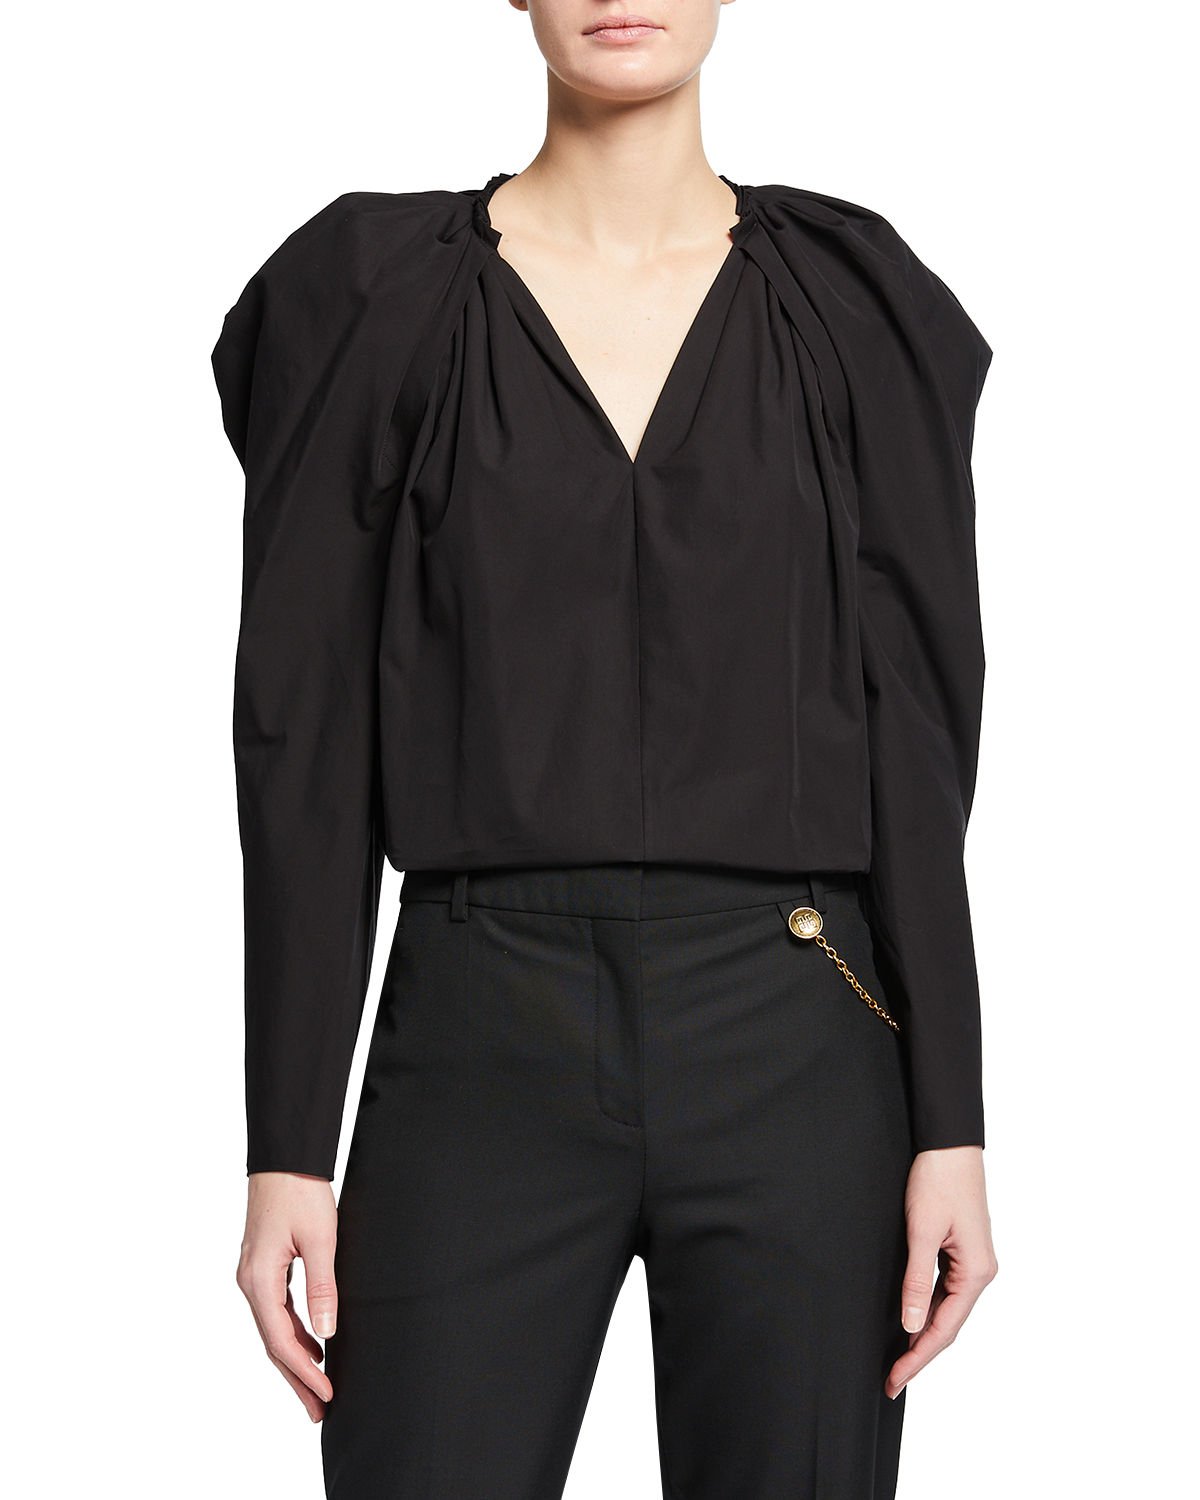 Givenchy PUFFY LONG-SLEEVE V-NECK TOP